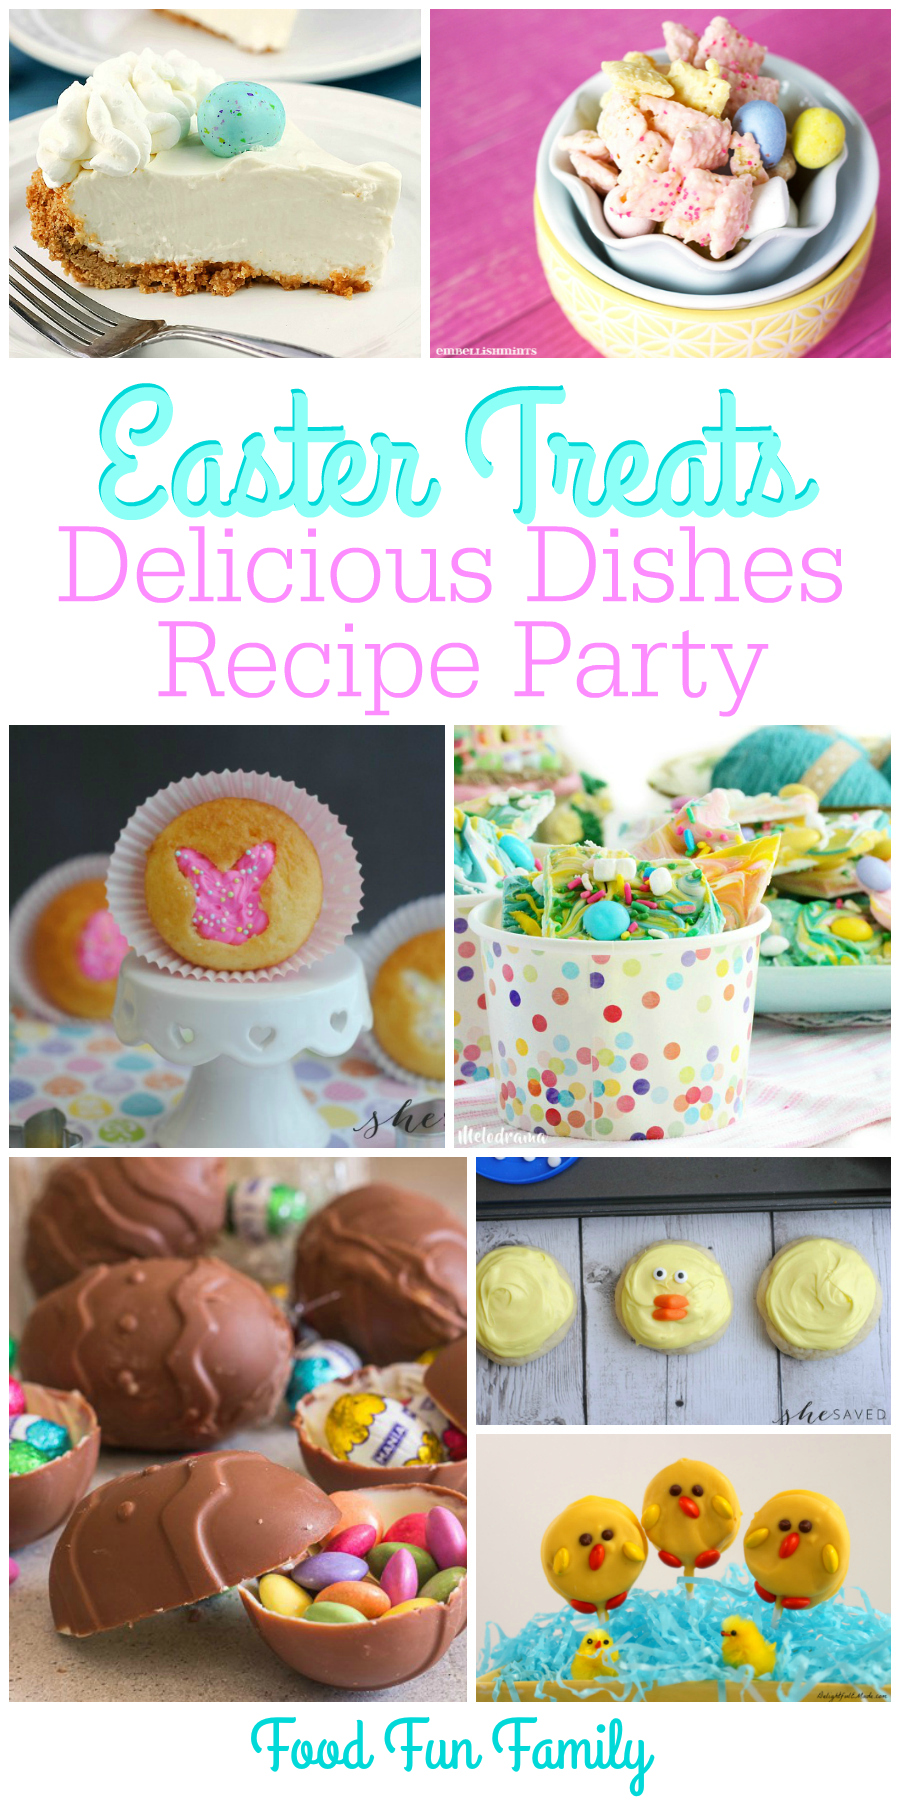 Easter Treats - A Delicious Dishes Recipe Party Collection from Food Fun Family